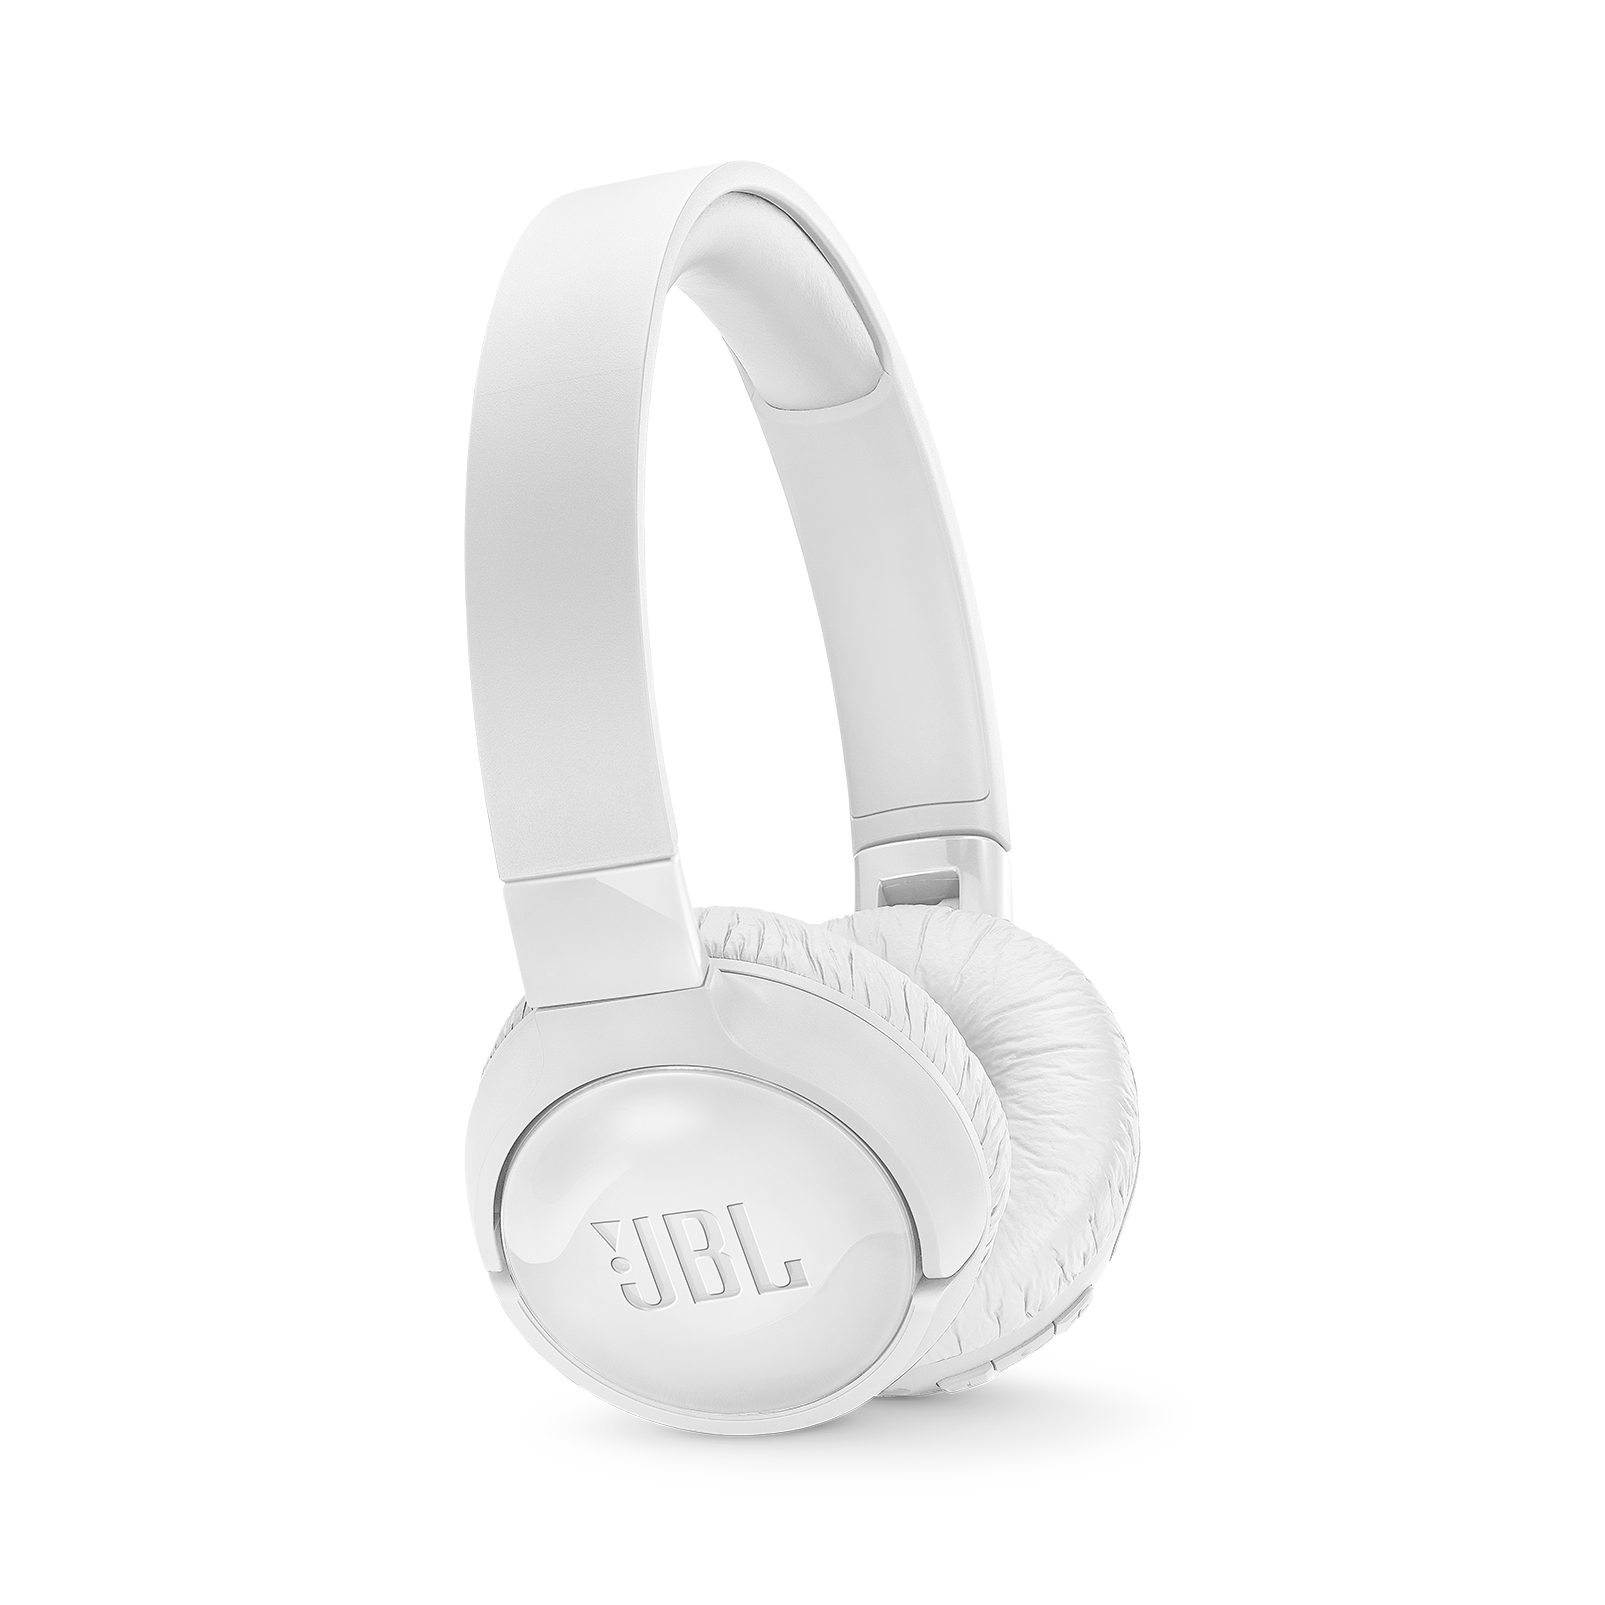 JBL TUNE 600BTNC - White - Wireless, on-ear, active noise-cancelling headphones. - Hero